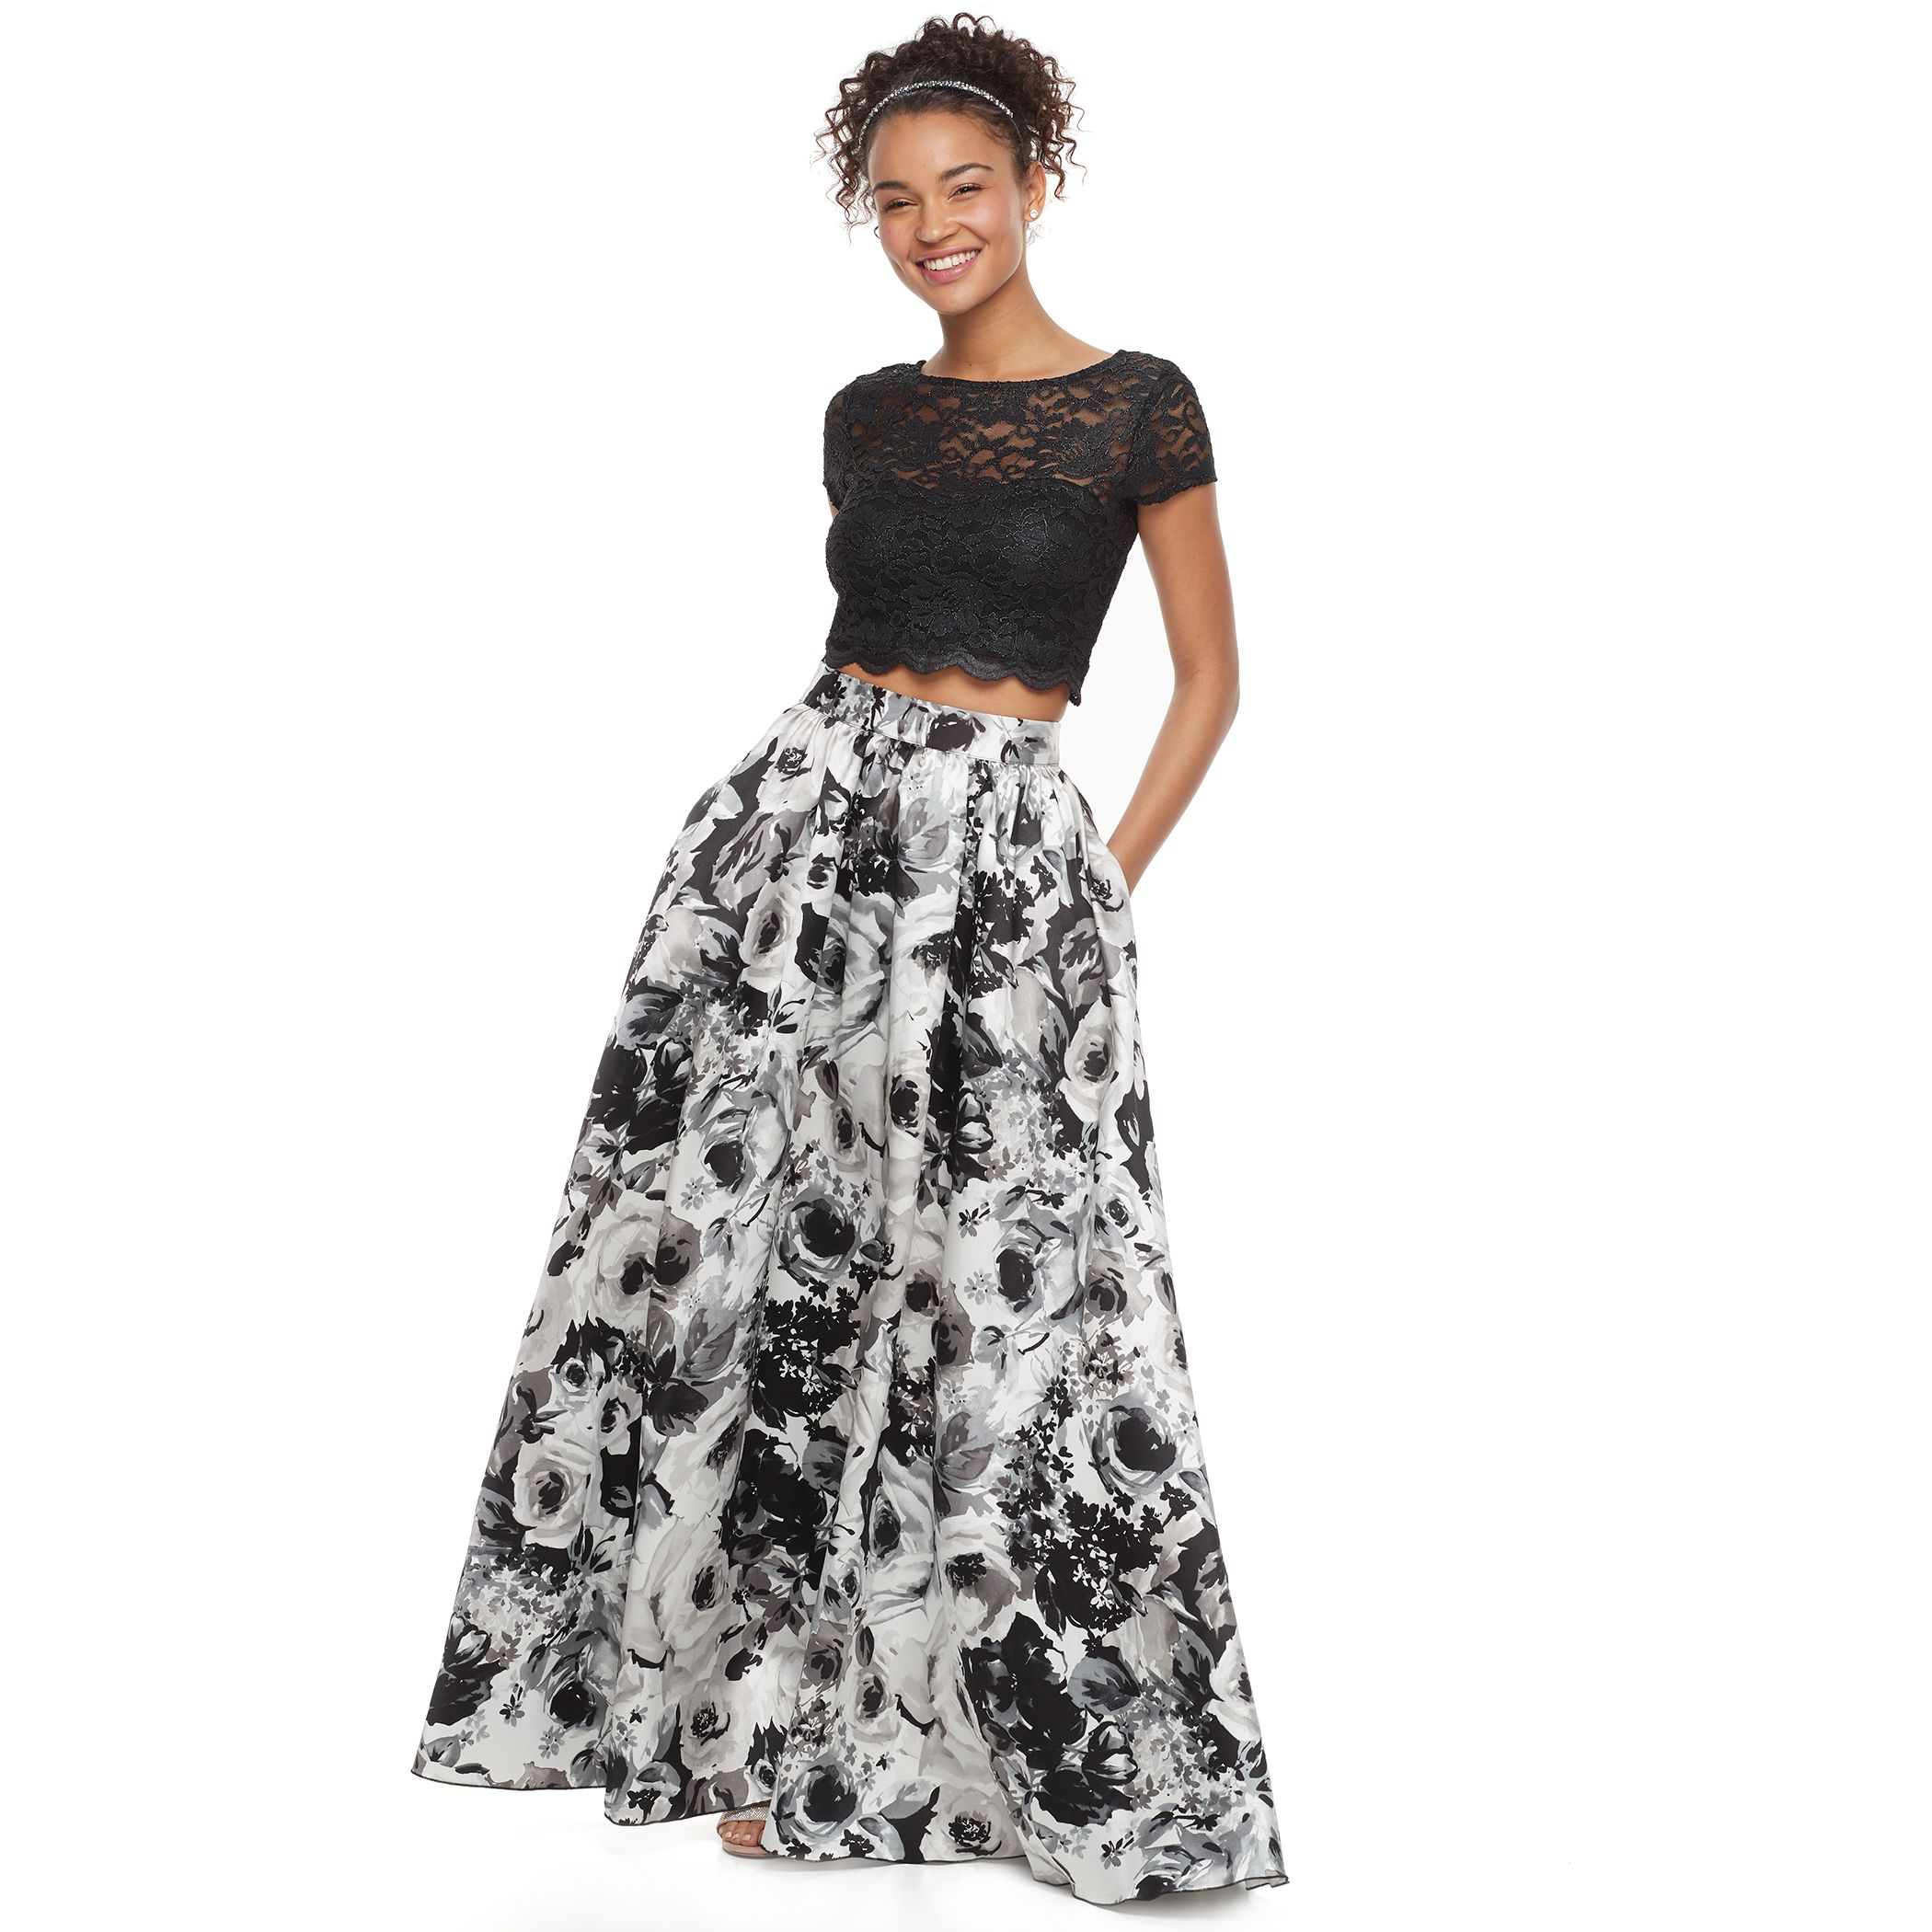 Juniors' Speechless Lace & Floral 2-Piece